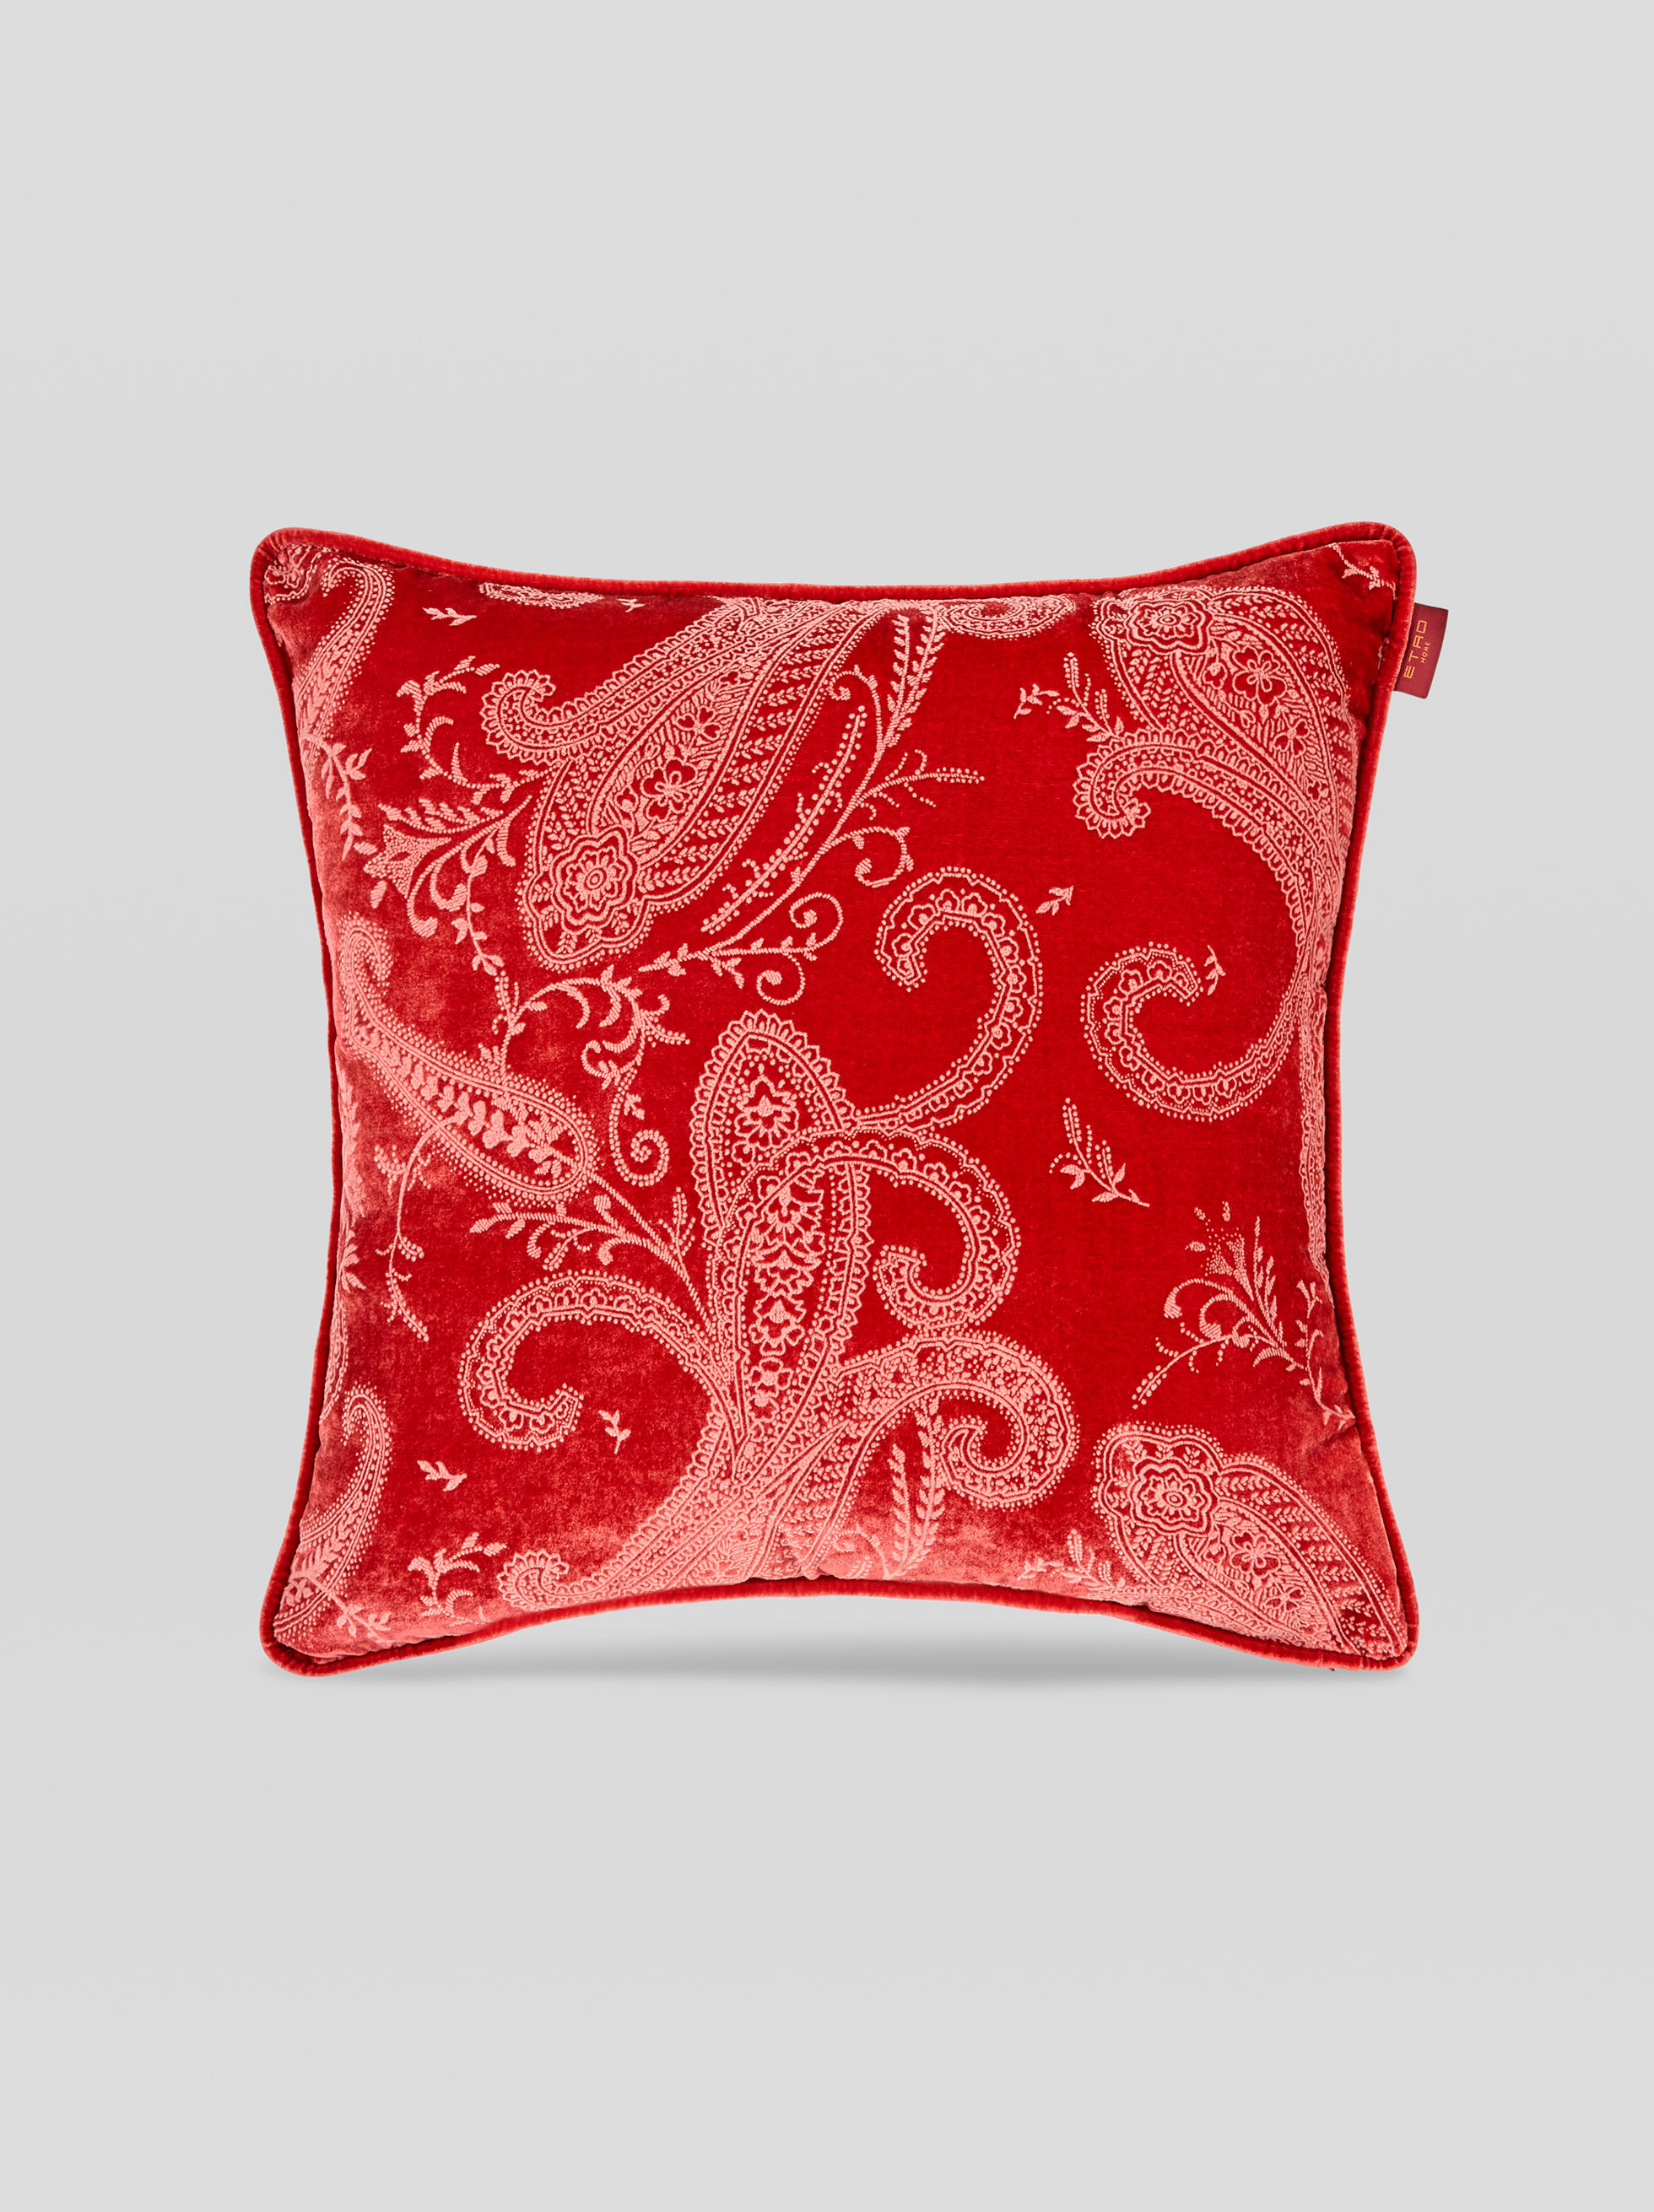 FLOCKED SILK VELVET CUSHION WITH TASSELS